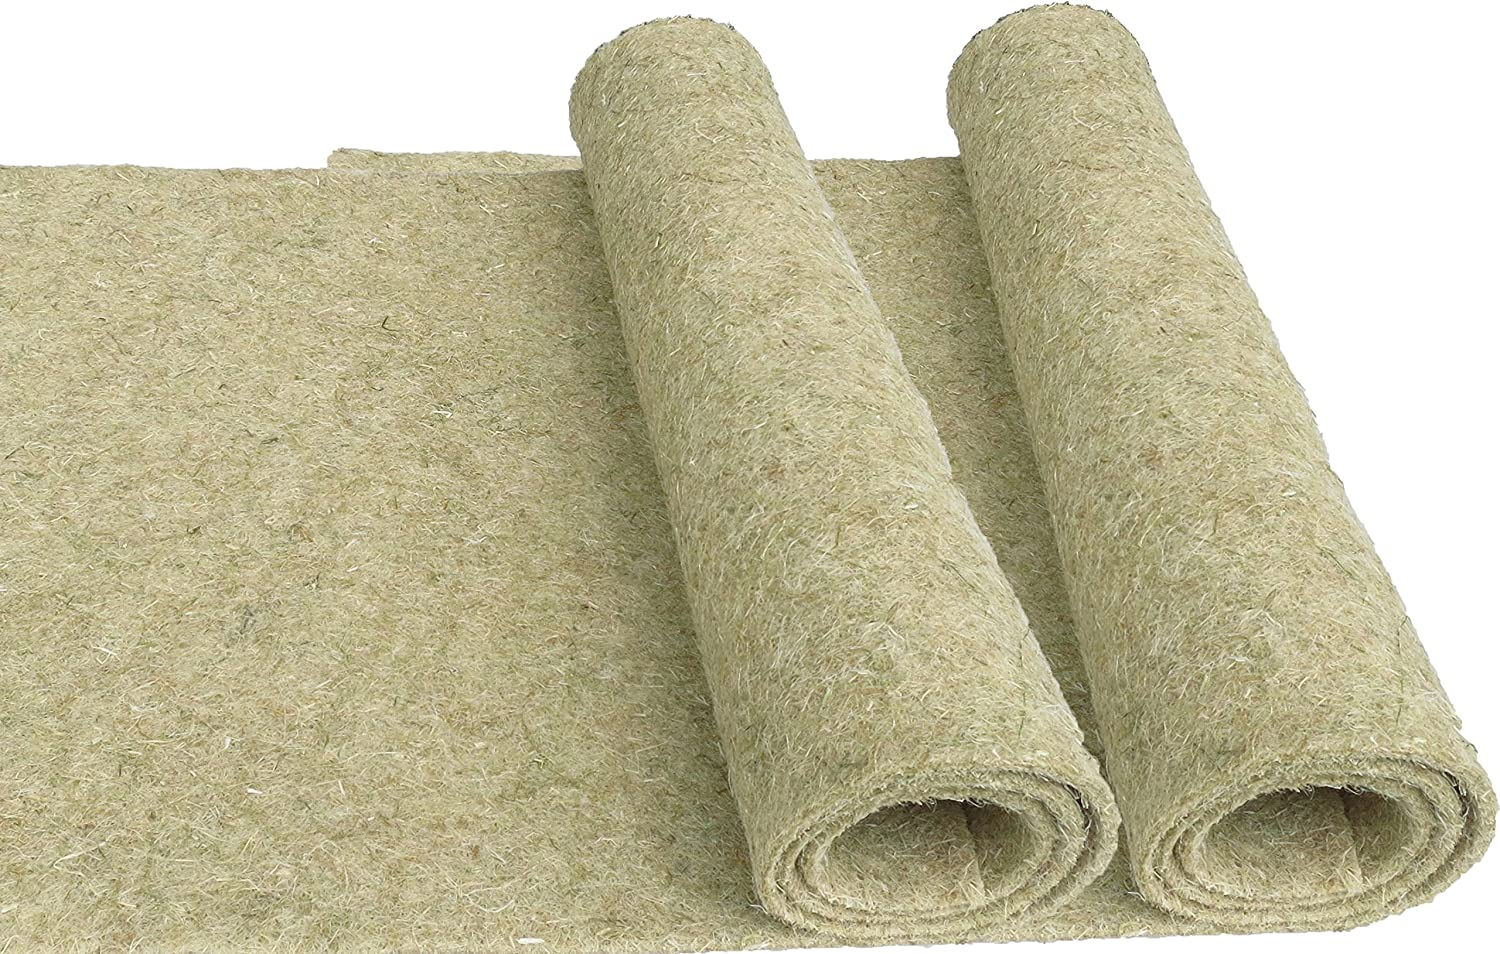 100% Hemp Rodent Mat, 120 x 60 cm 5 mm Thick, Pack of 2 (€/Piece 9.95), as Rodent Mat Cage Ground Cover for Rabbits, Guinea Pigs, Hamsters, Rats, Degus and Rodents. pemmiproducts